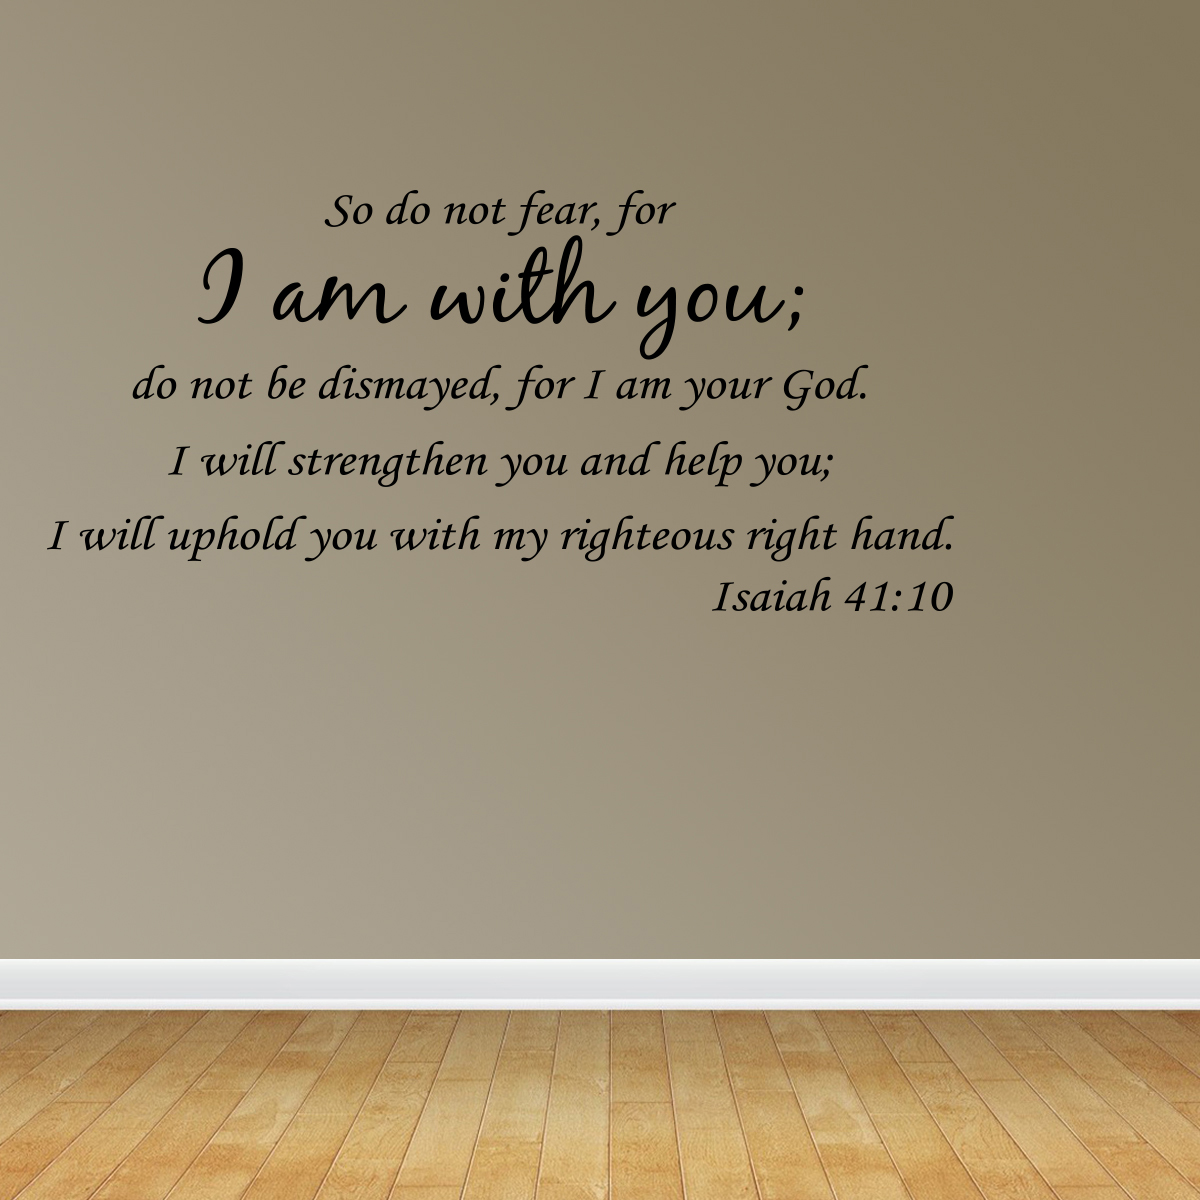 Wall Decal Quote So Do Not Fear For I Am With You Bible Verse Sticker R37